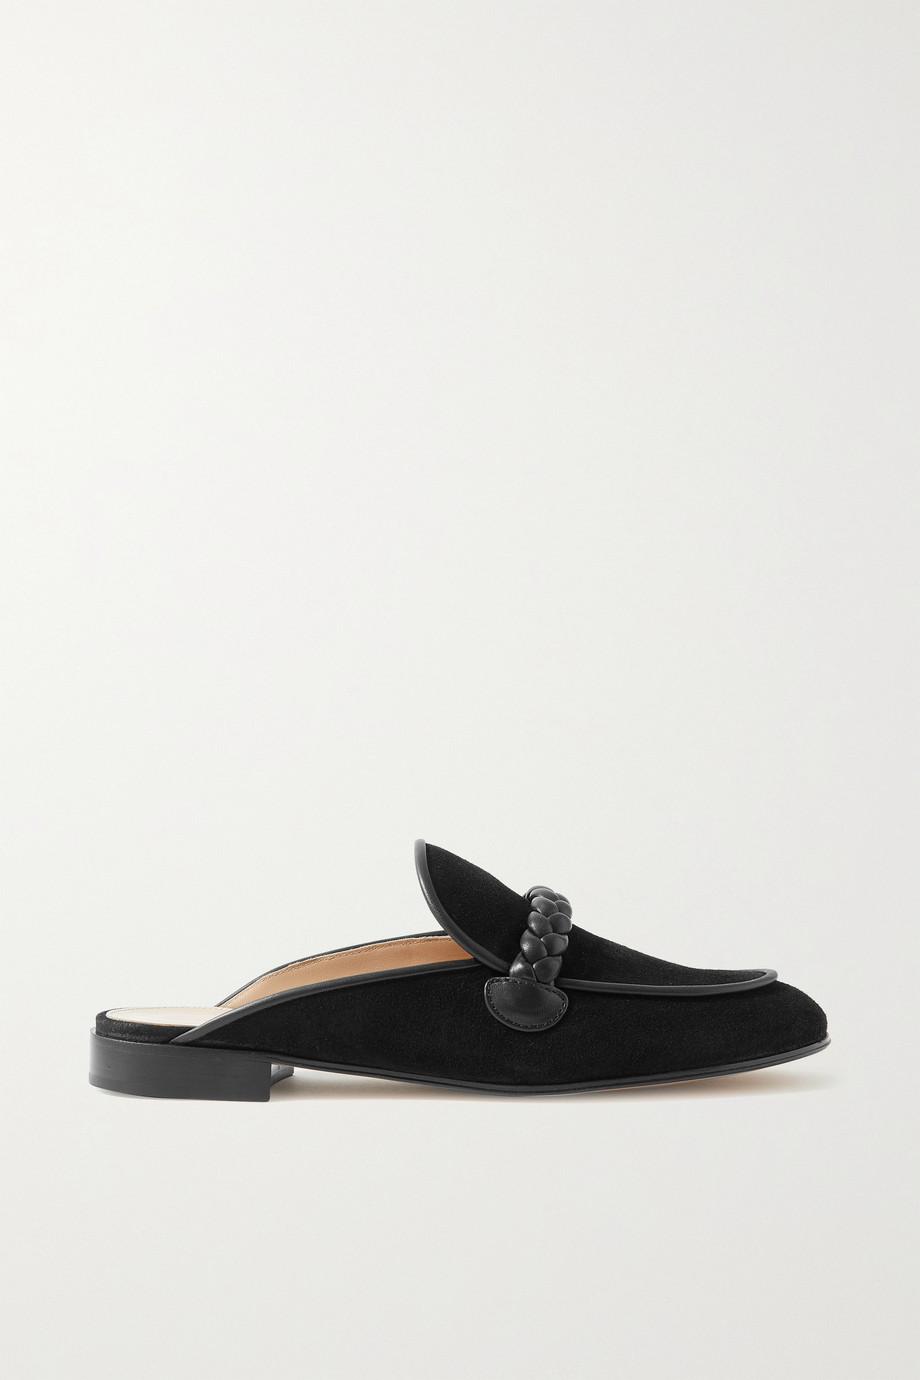 Gianvito Rossi Belem leather-trimmed suede slippers